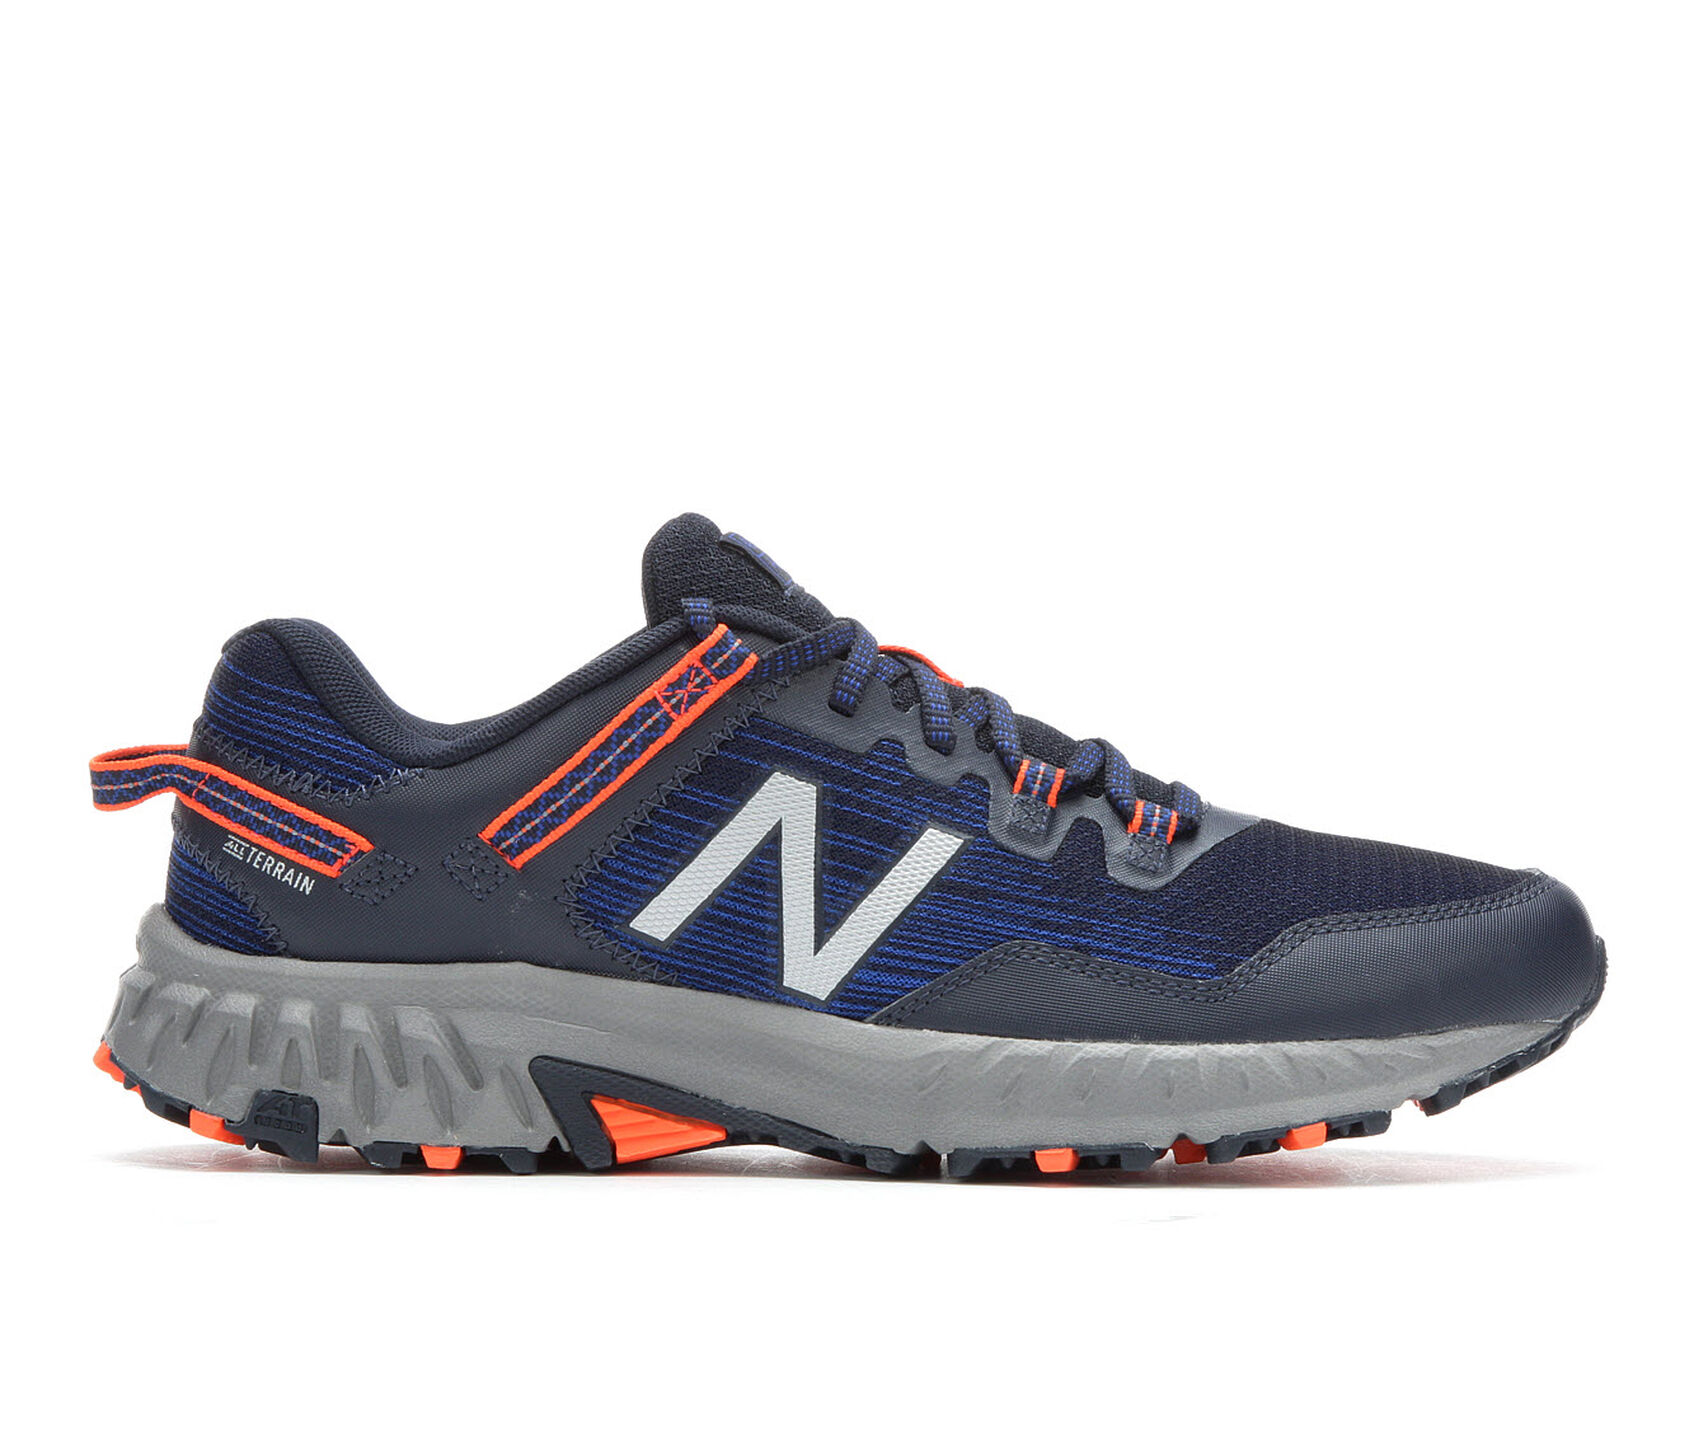 6a49b811 Men's New Balance MT410 Trail Running Shoes